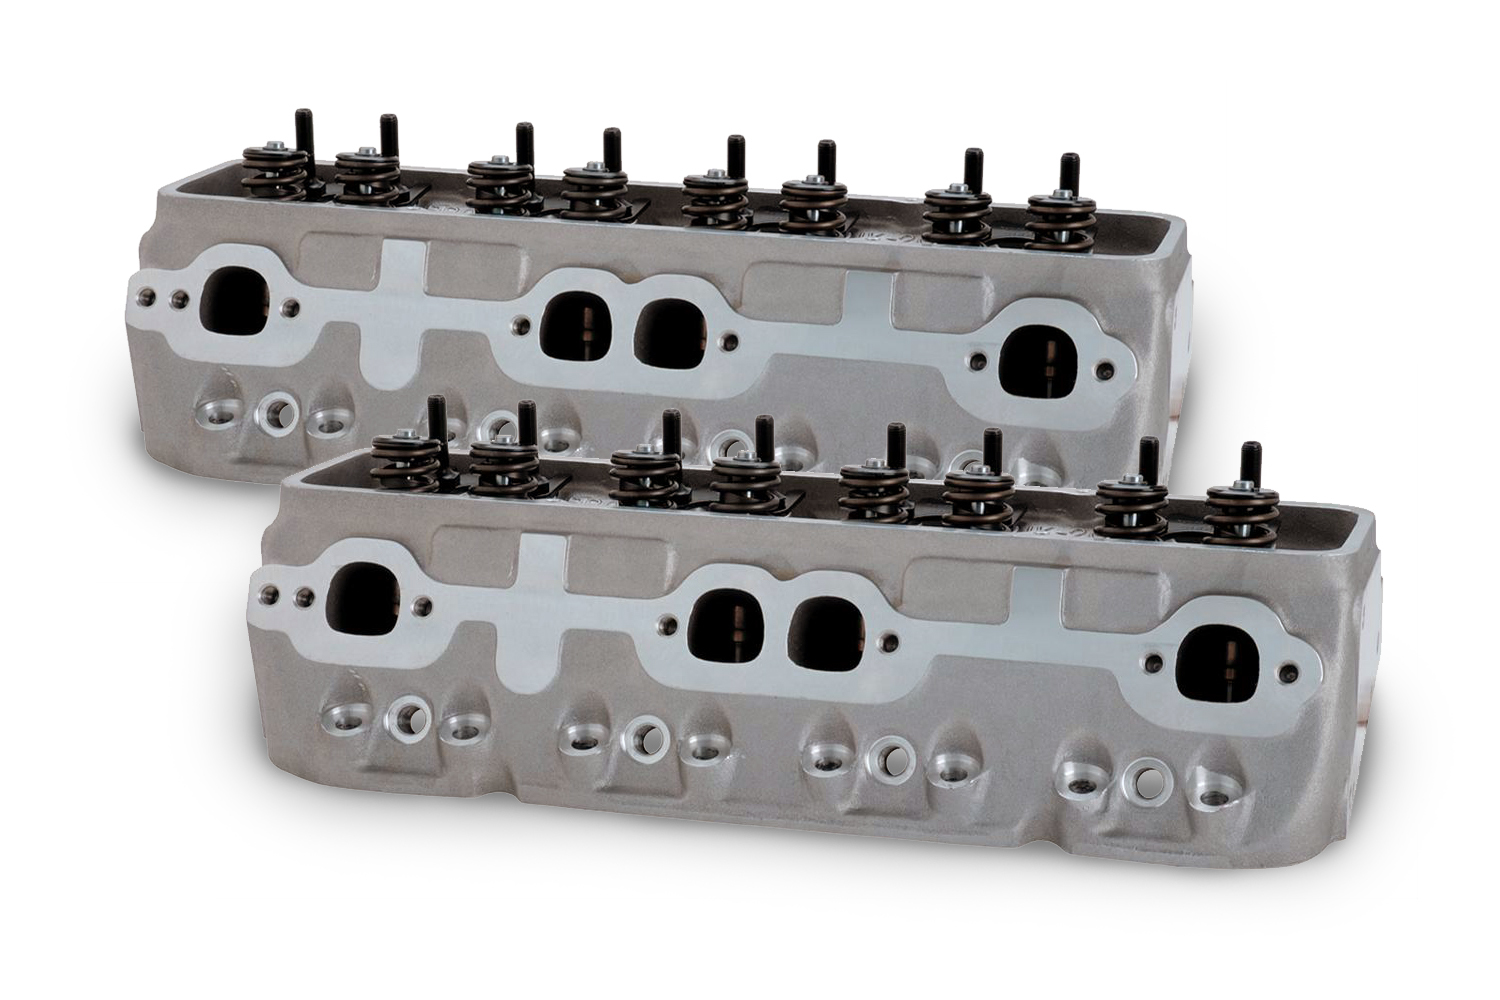 Brodix 1021001 Cylinder Head, IK 200, Assembled, 2.020 / 1.600 in Valves, 200 cc Intake, 64 cc Chamber, 1.470 in Springs, Aluminum, Small Block Chevy, Pair